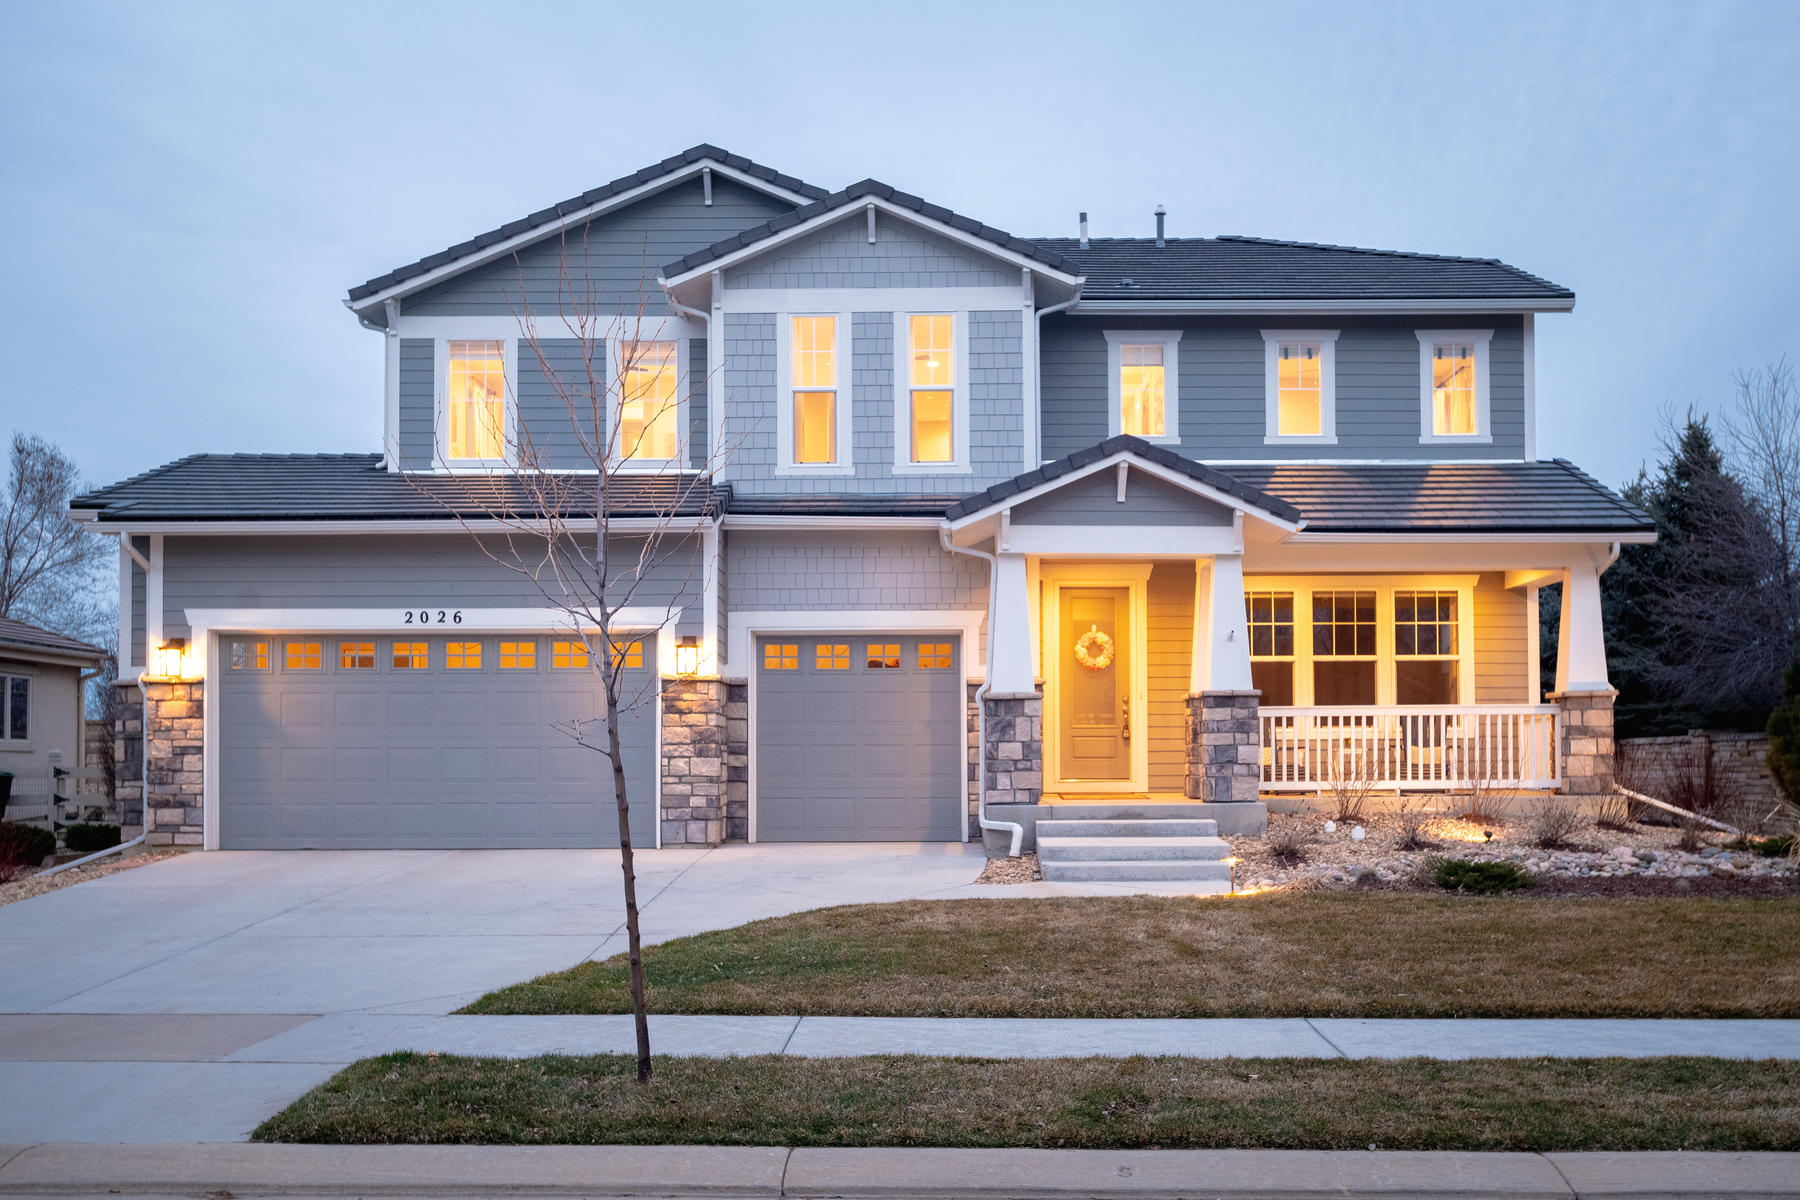 Single Family Homes for Active at Award-Winning Newer Model Home 2026 Braeburn Ct Longmont, Colorado 80503 United States